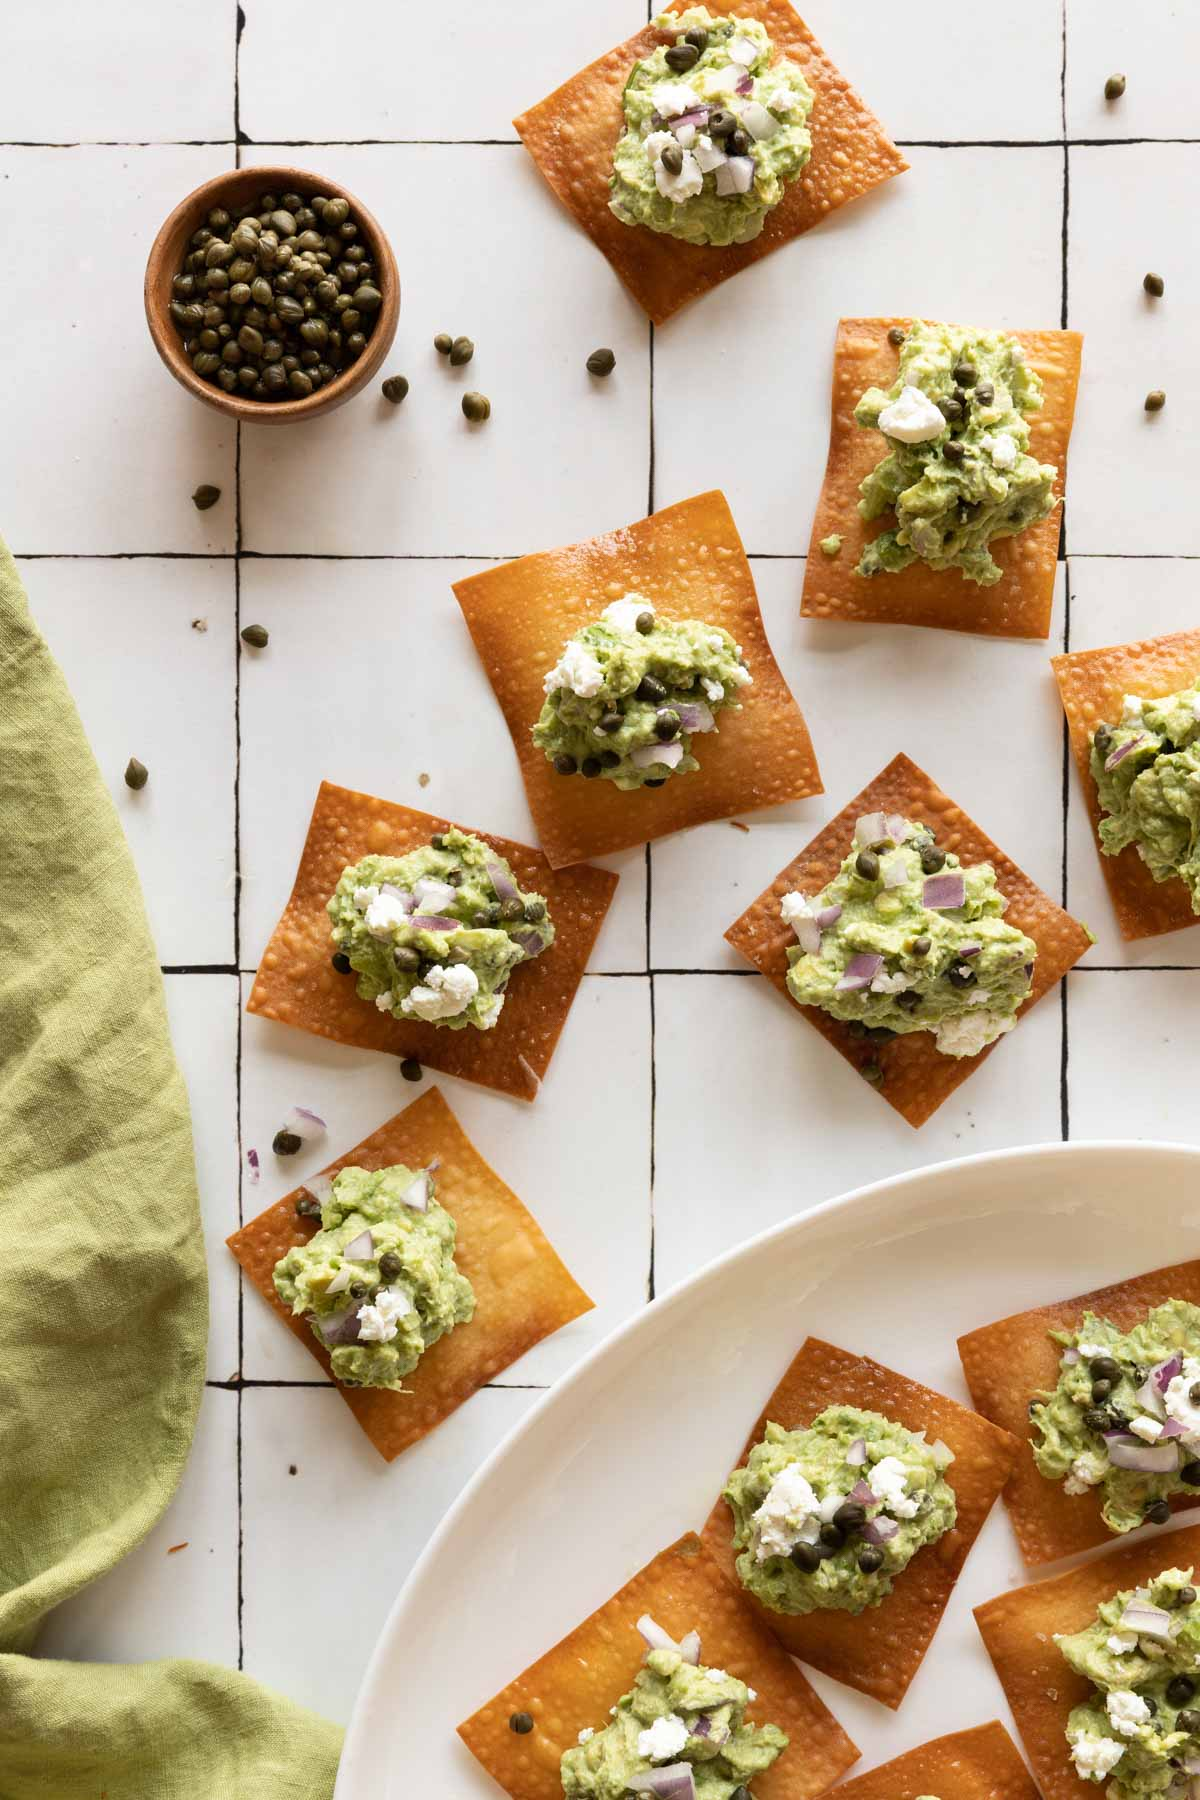 Wonton skins topped with guacamole on a plate